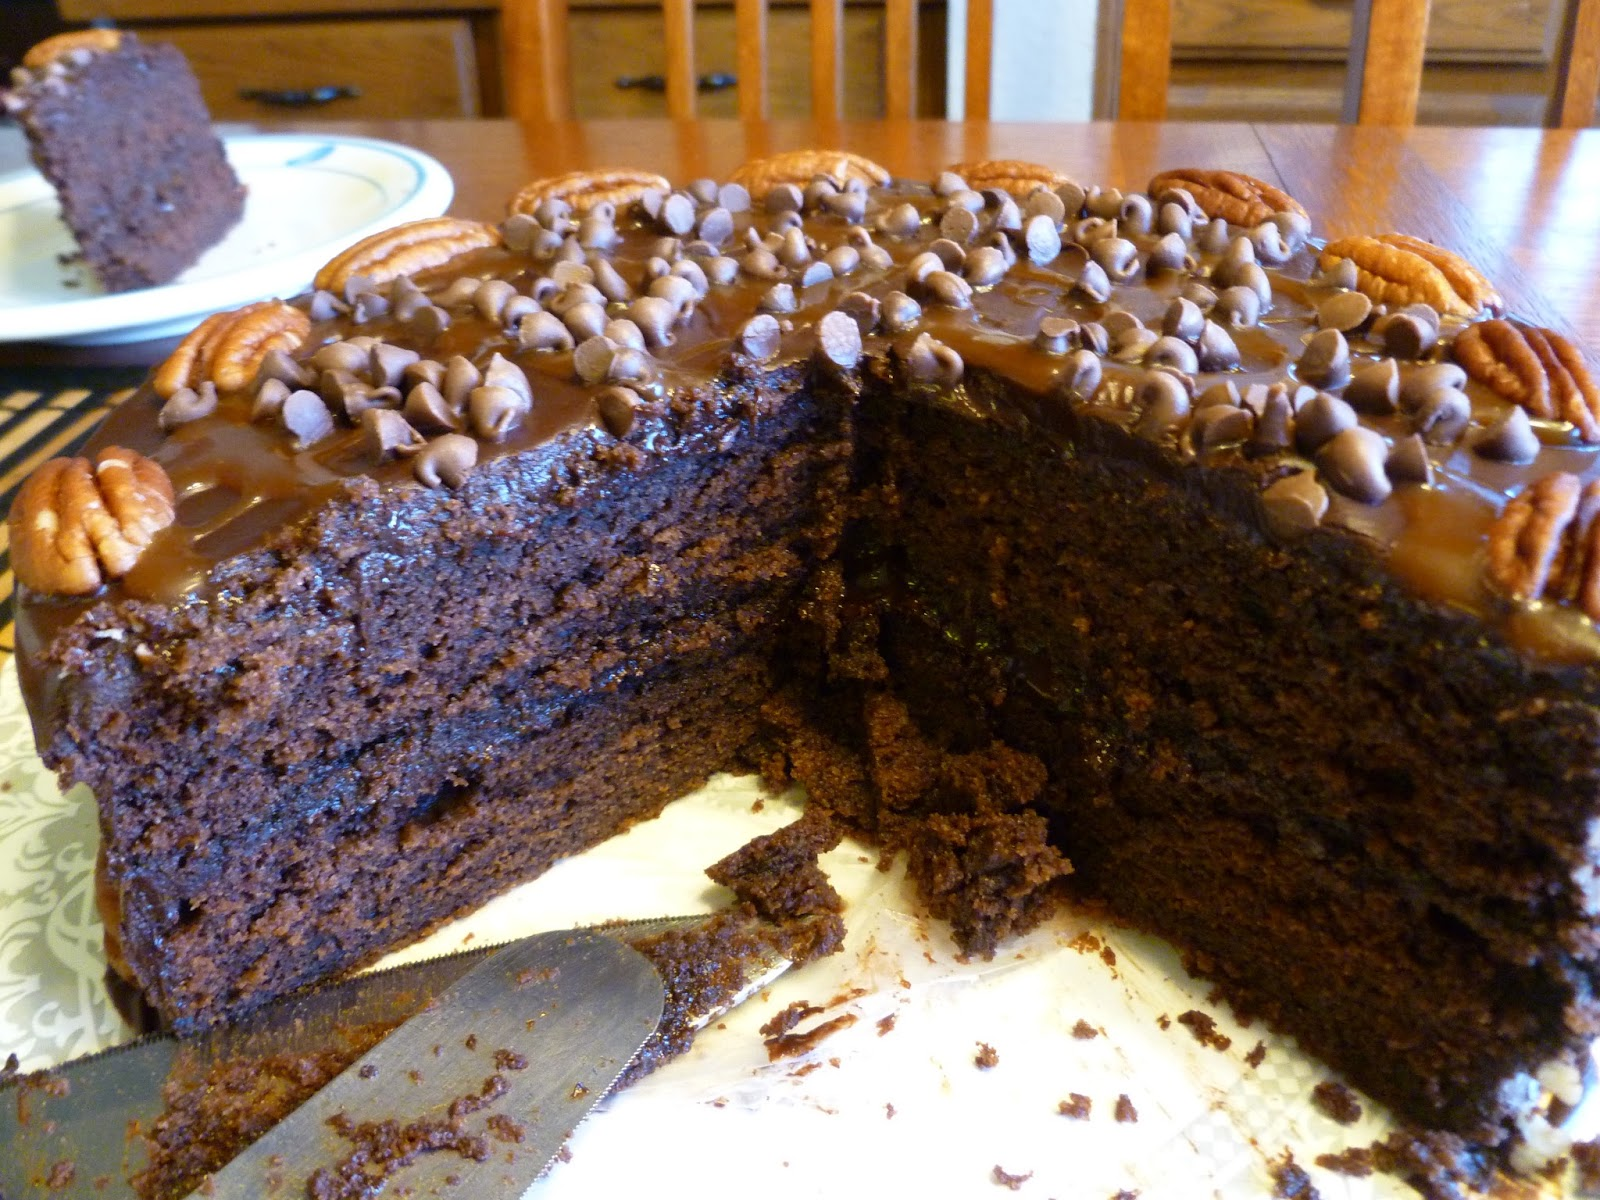 The Pastry Chef s Baking: Chocolate Turtle Cake